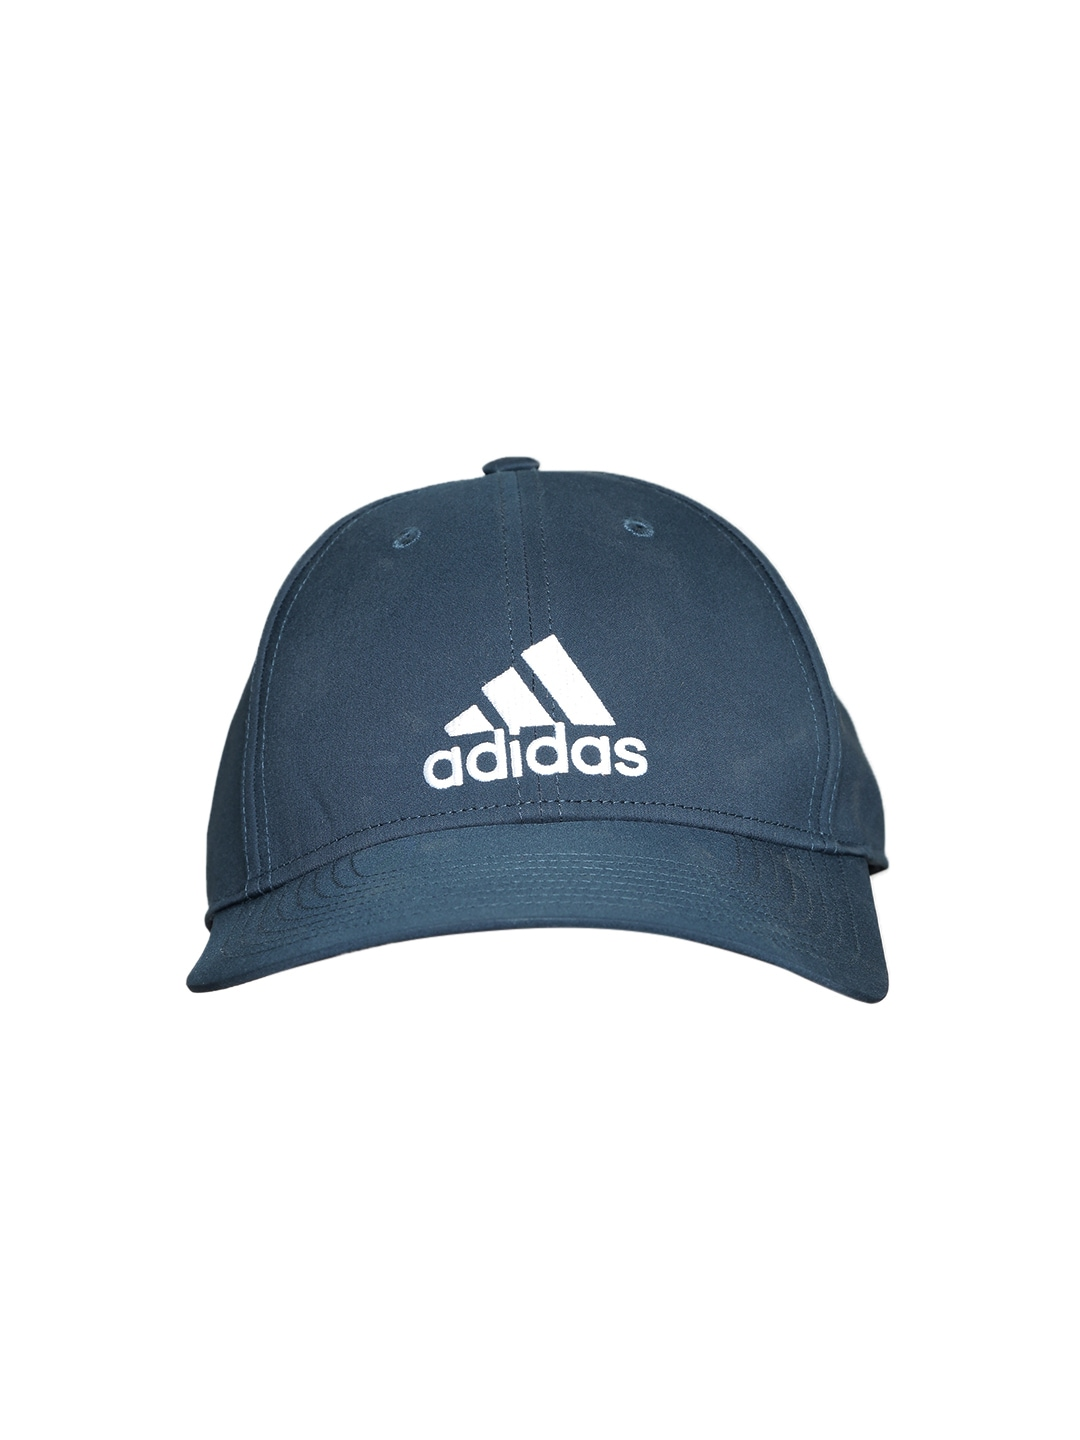 2b3dbc2e160 Cap Adidas Headband - Buy Cap Adidas Headband online in India